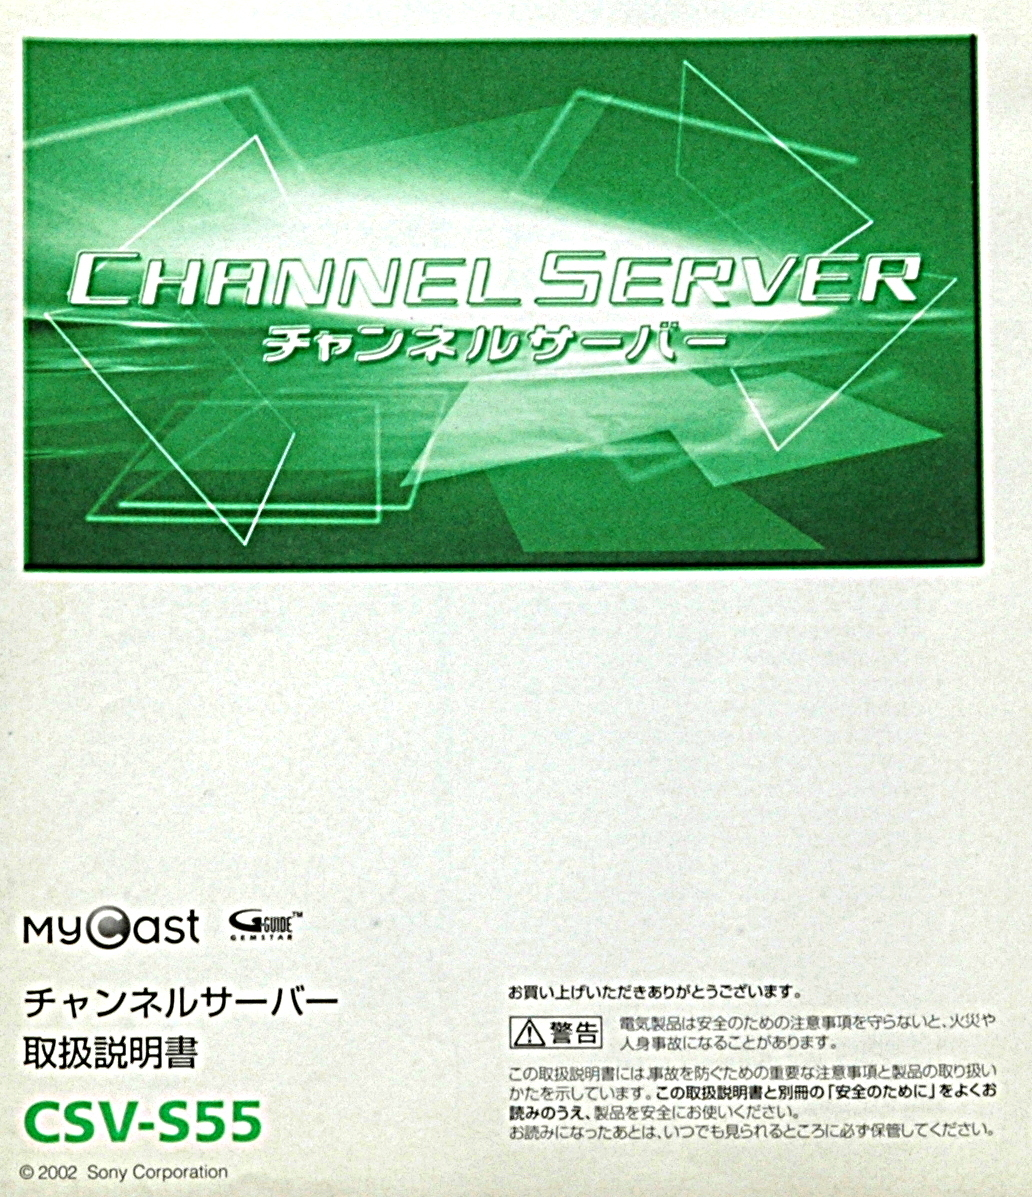 [Delivery Free]2002 SONY CSV-S55 Channel Server(Instruction Manual) ソニー チャンネルサーバー 取扱説明書[tag6666]_画像2